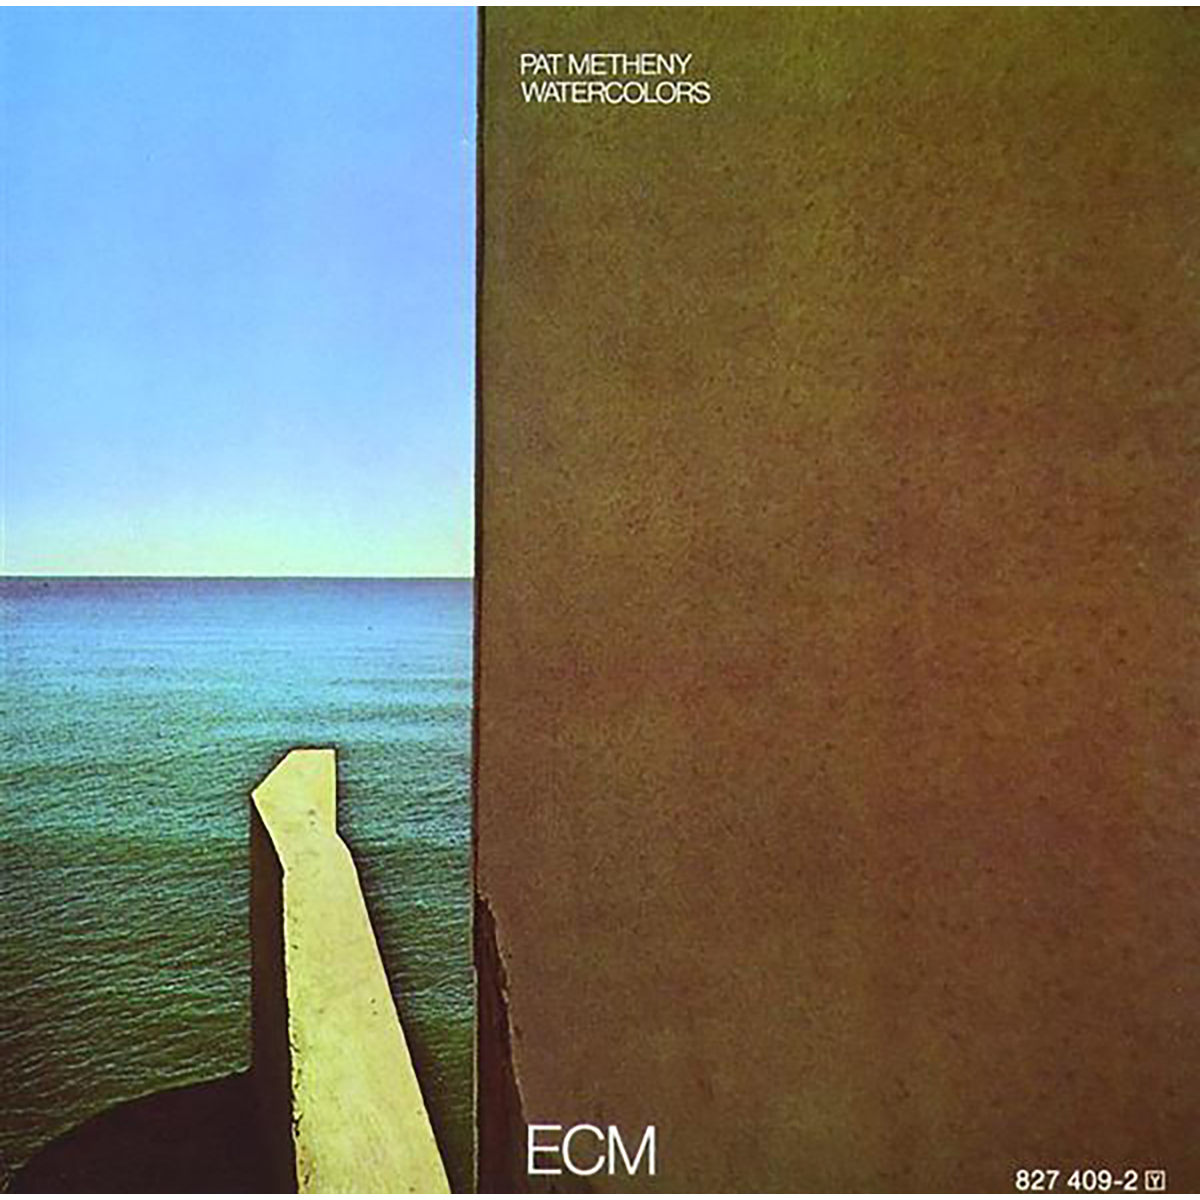 Pat Metheny - Watercolors - Digital Download